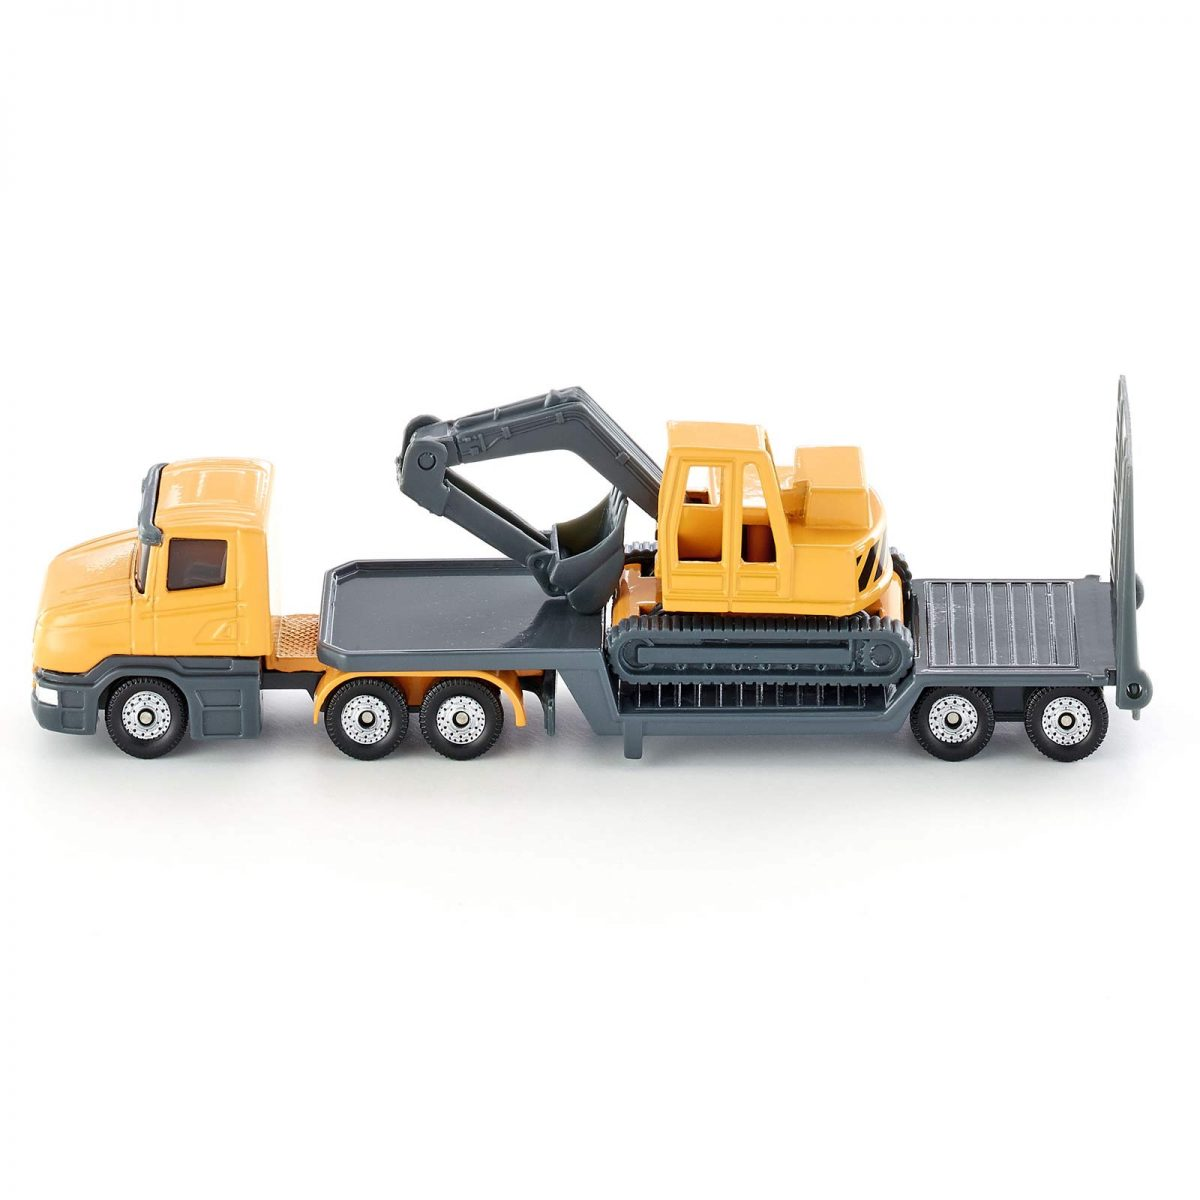 Siku – Low Loader With Excavator (4M-SI1611) Image 1